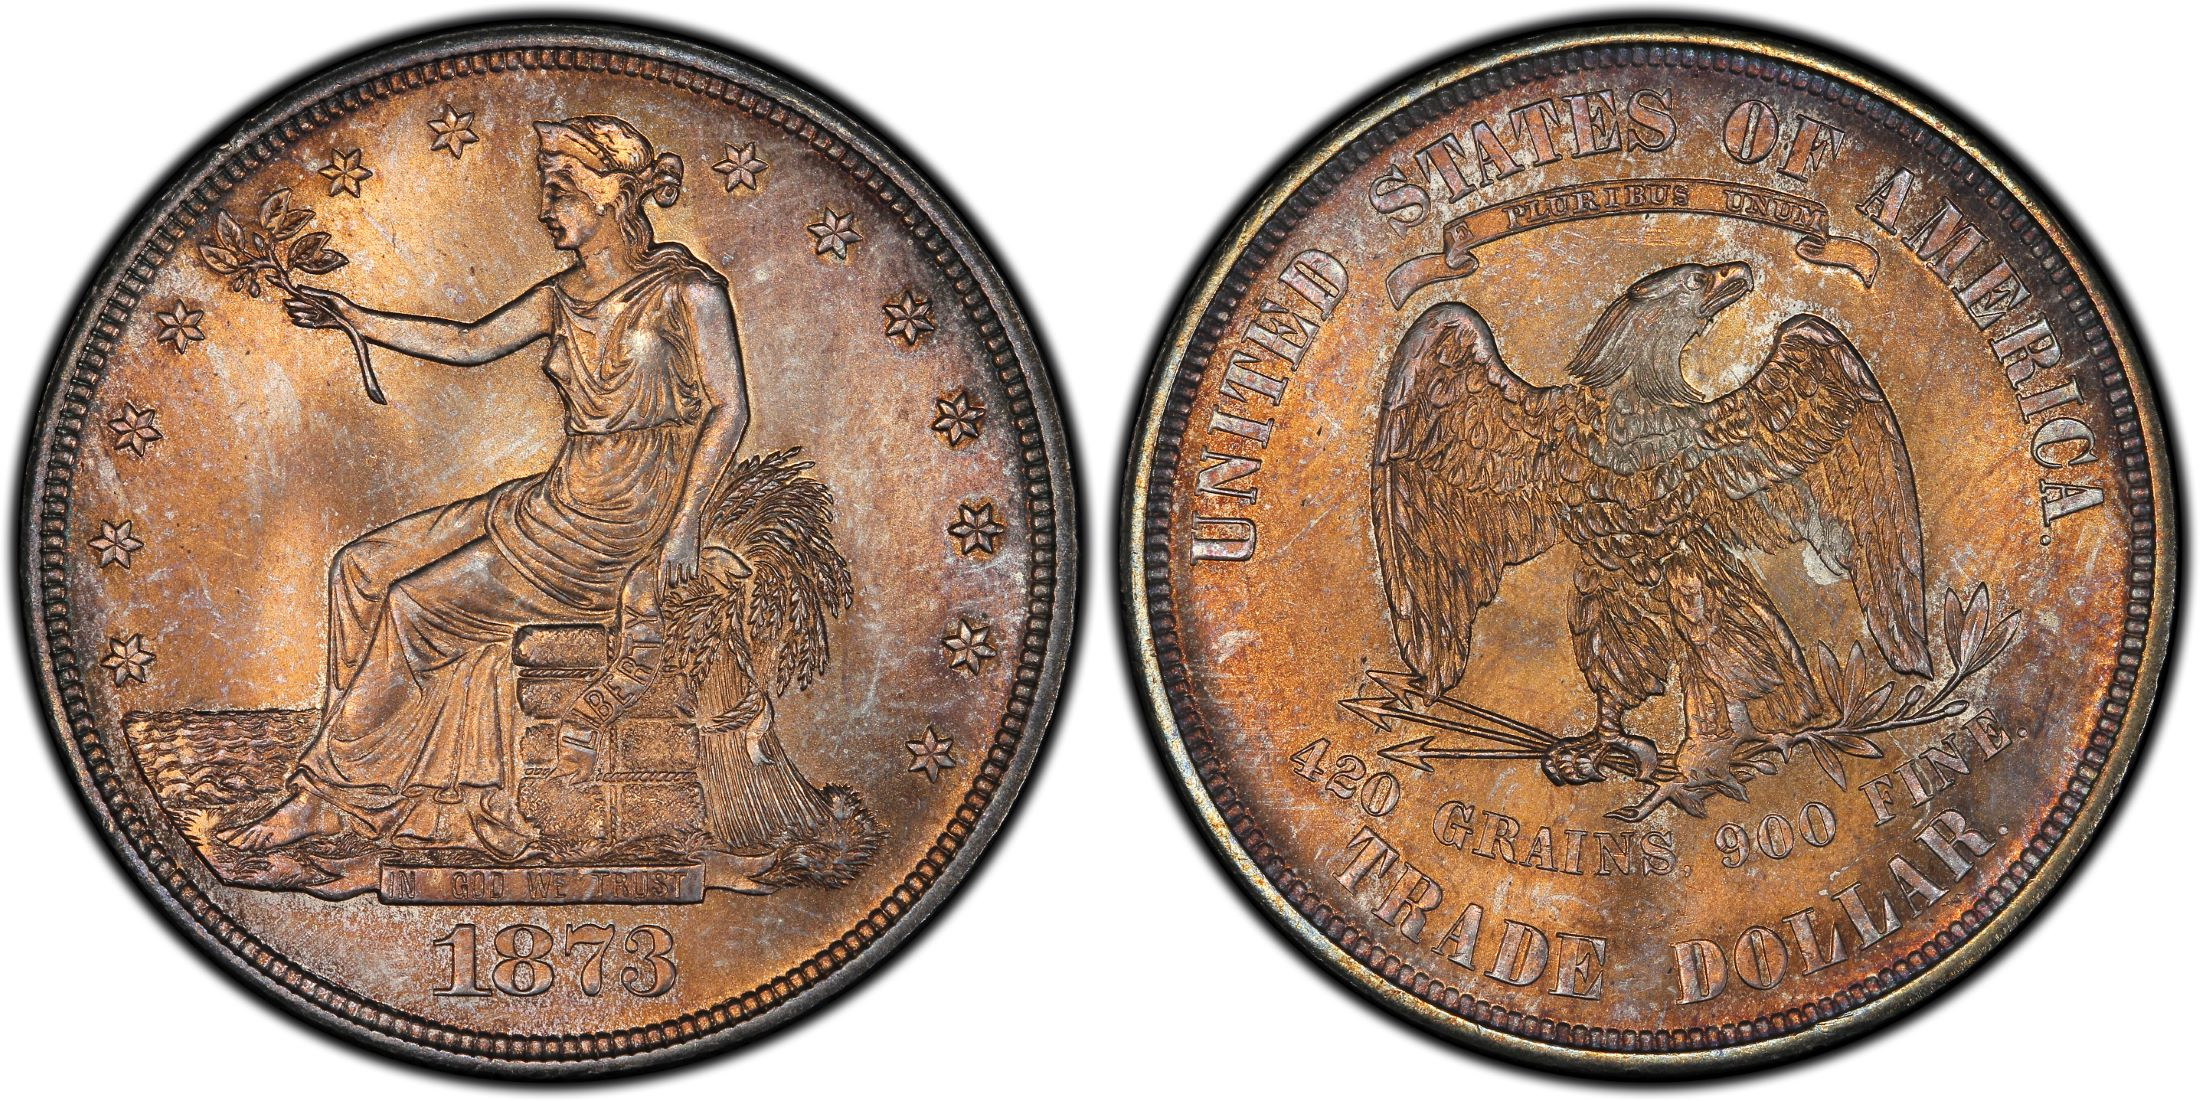 Numismatic Art in America: Aesthetics of the United States Coinage